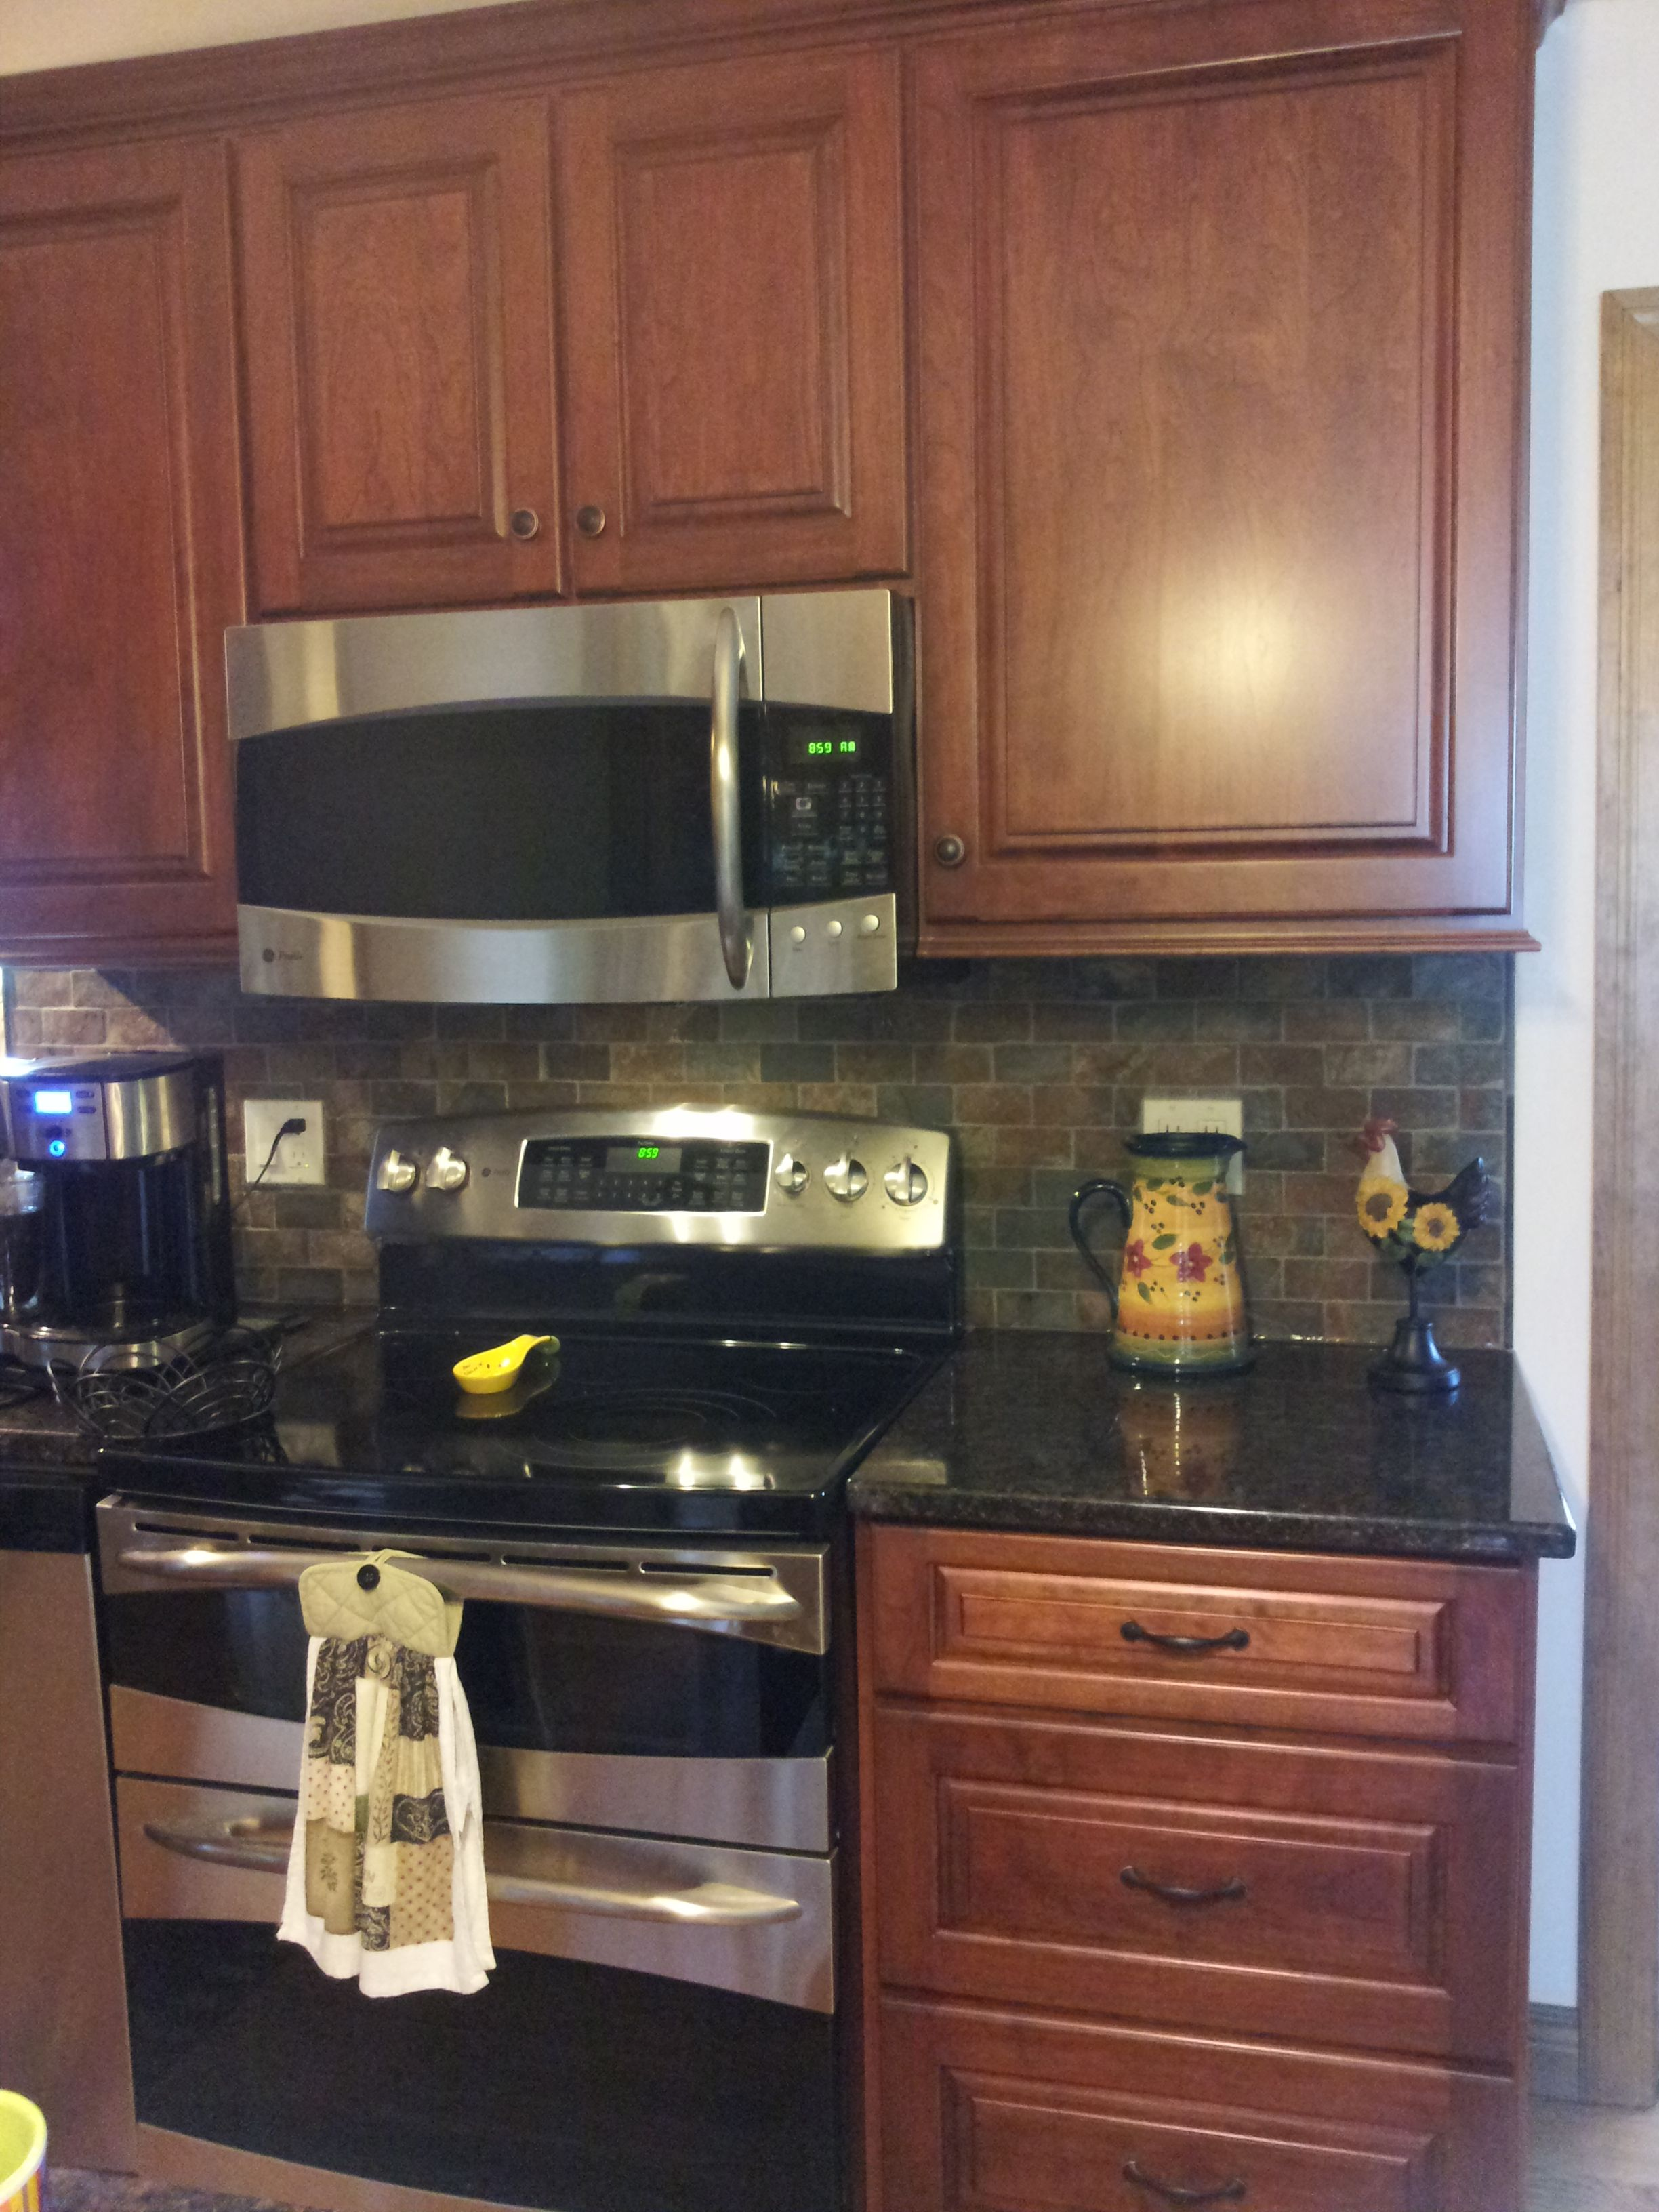 Kitchen Backsplash With Dark Cabinets Cherry Cabinets Tan Brown Granite Counter Copper Rust